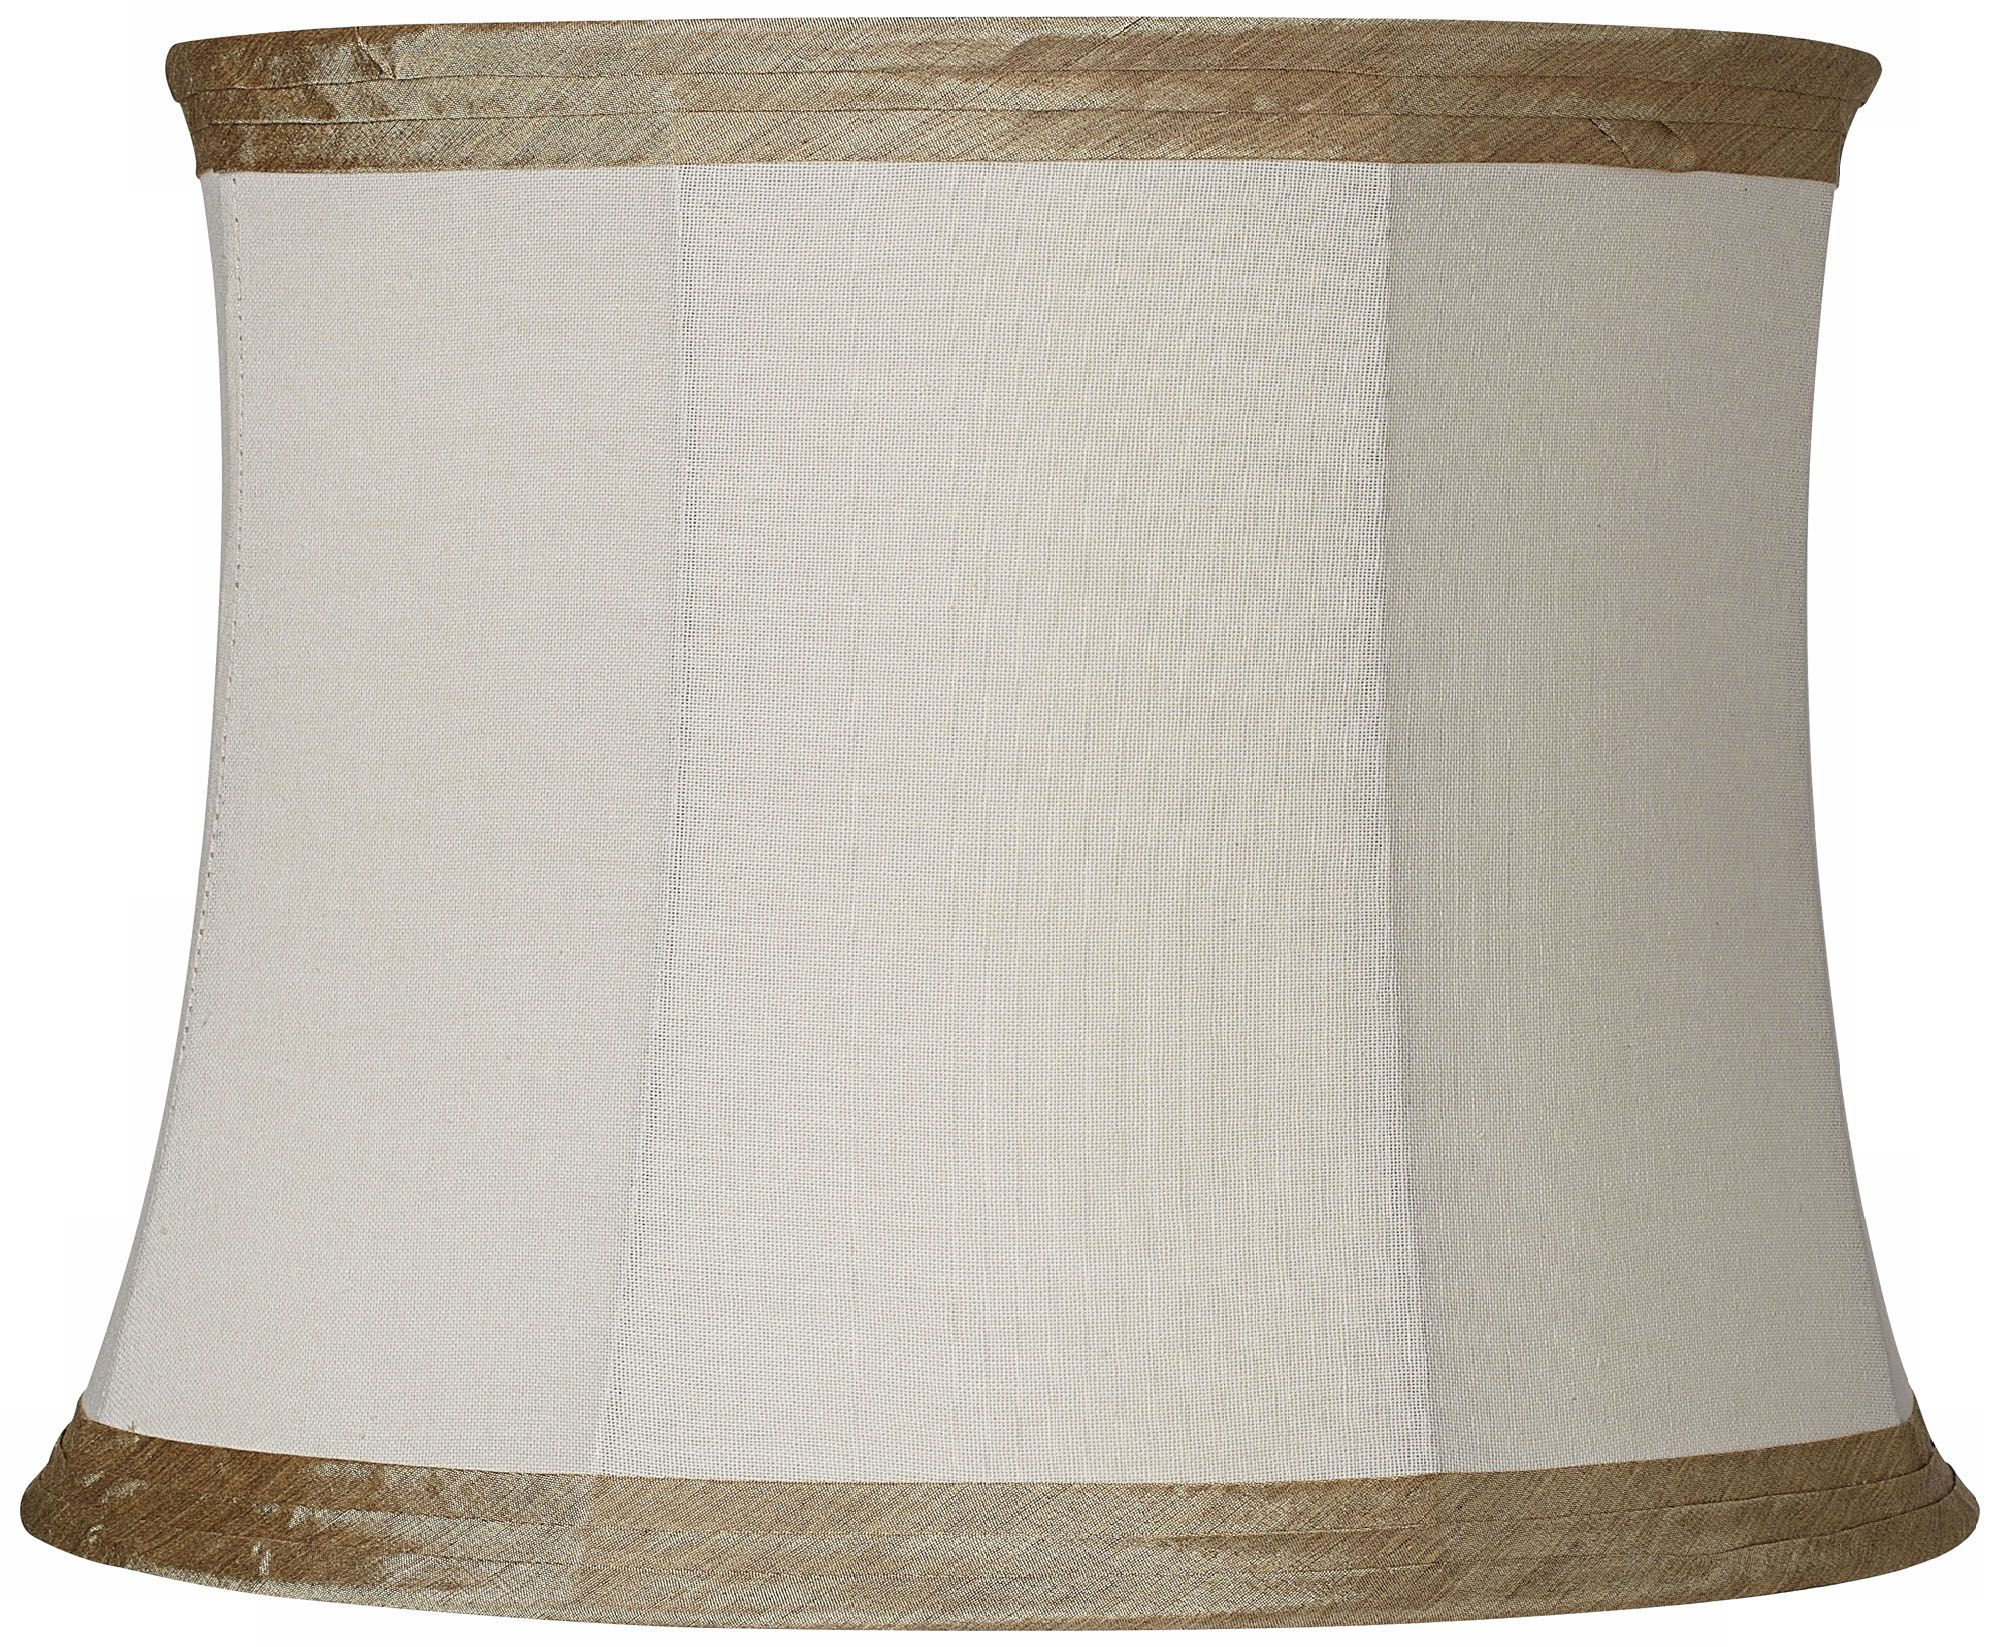 Ivory Linen with Taupe Trim L& Shade 14x16x12  sc 1 st  L&s Plus & Creme Mushroom Pleat Lamp Shade 12x18x18 (Spider) - #K5507 | Lamps ... azcodes.com